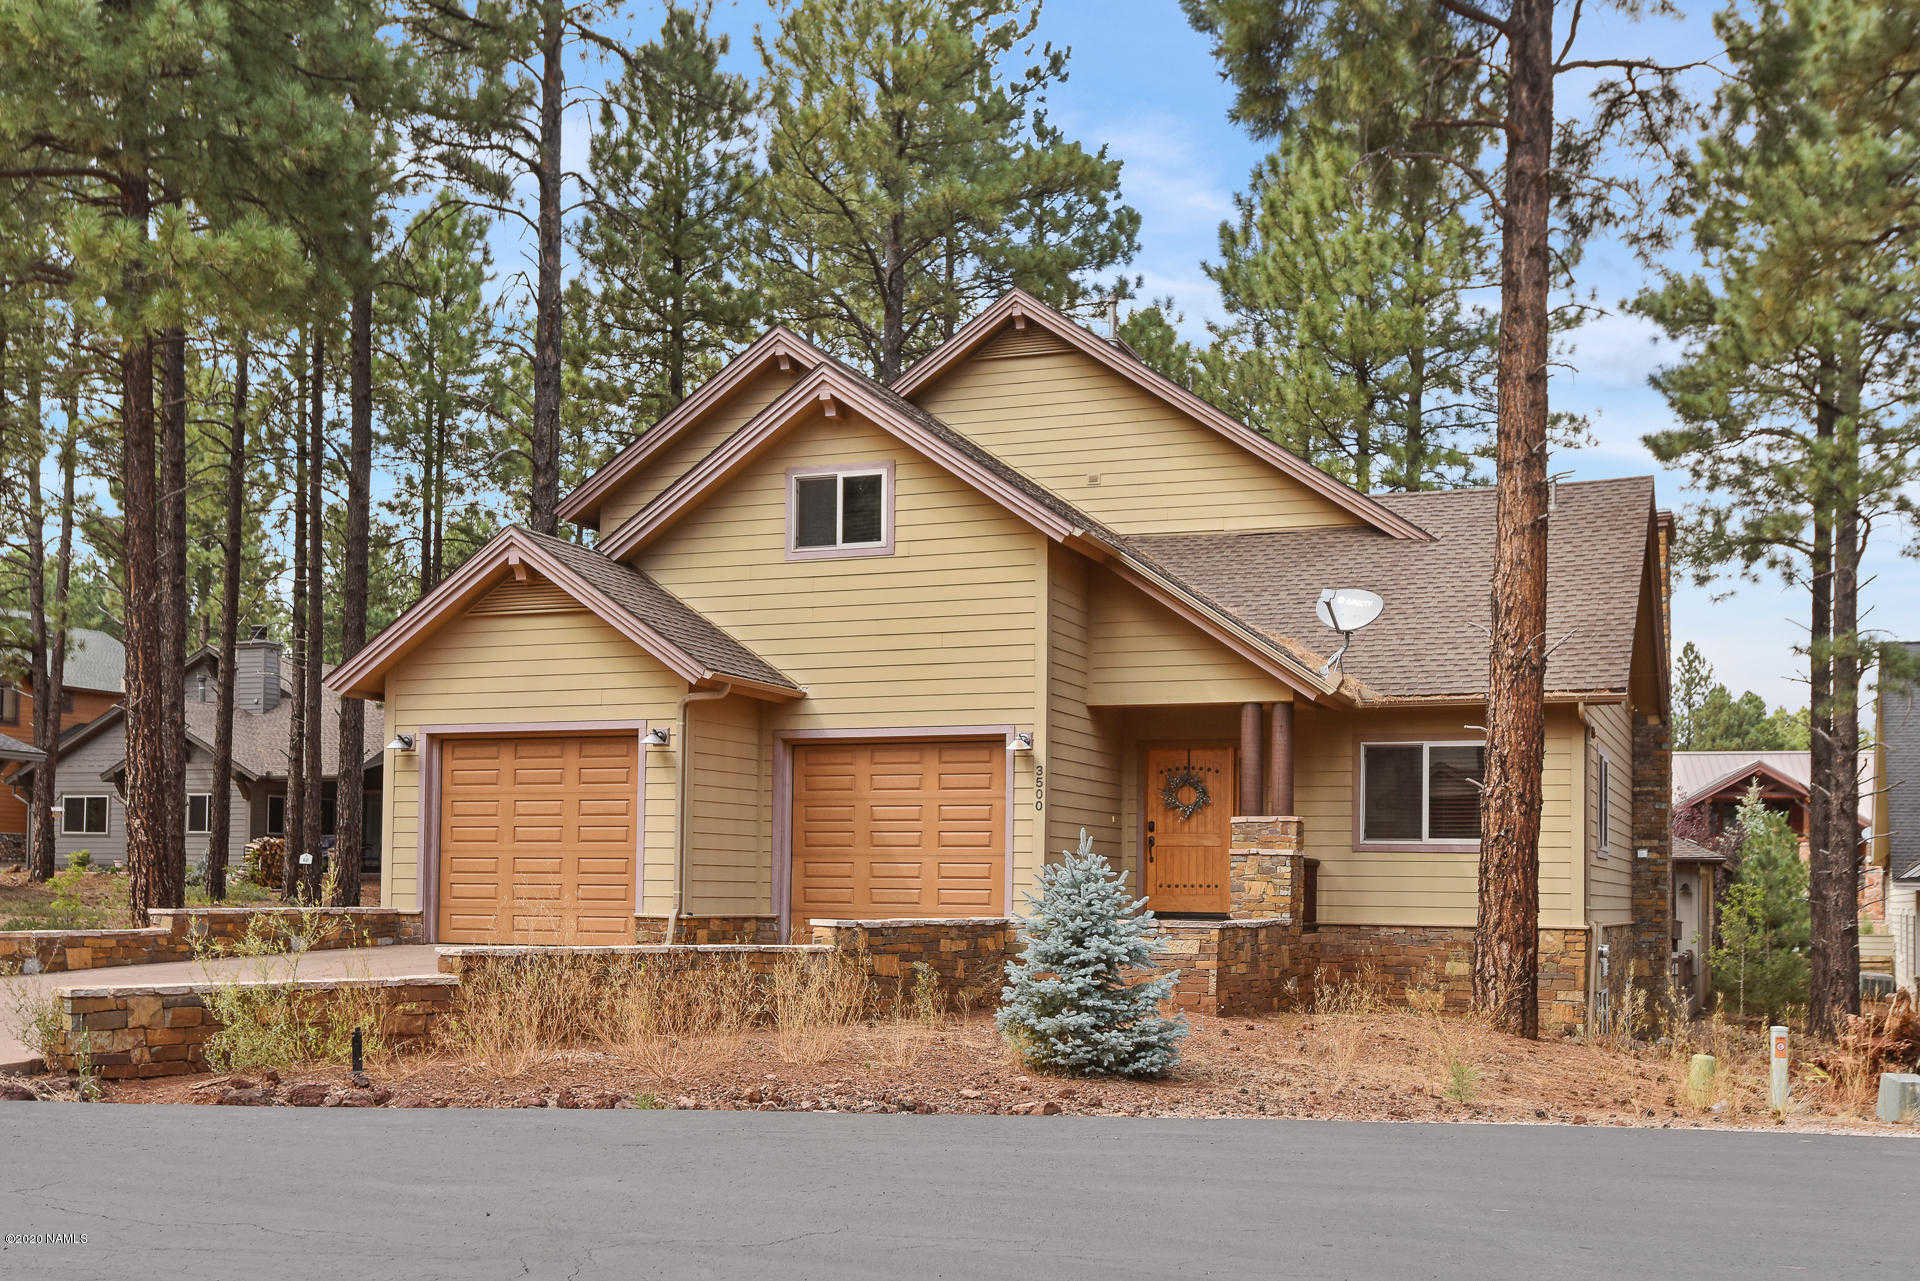 $979,000 - 4Br/3Ba -  for Sale in Flagstaff